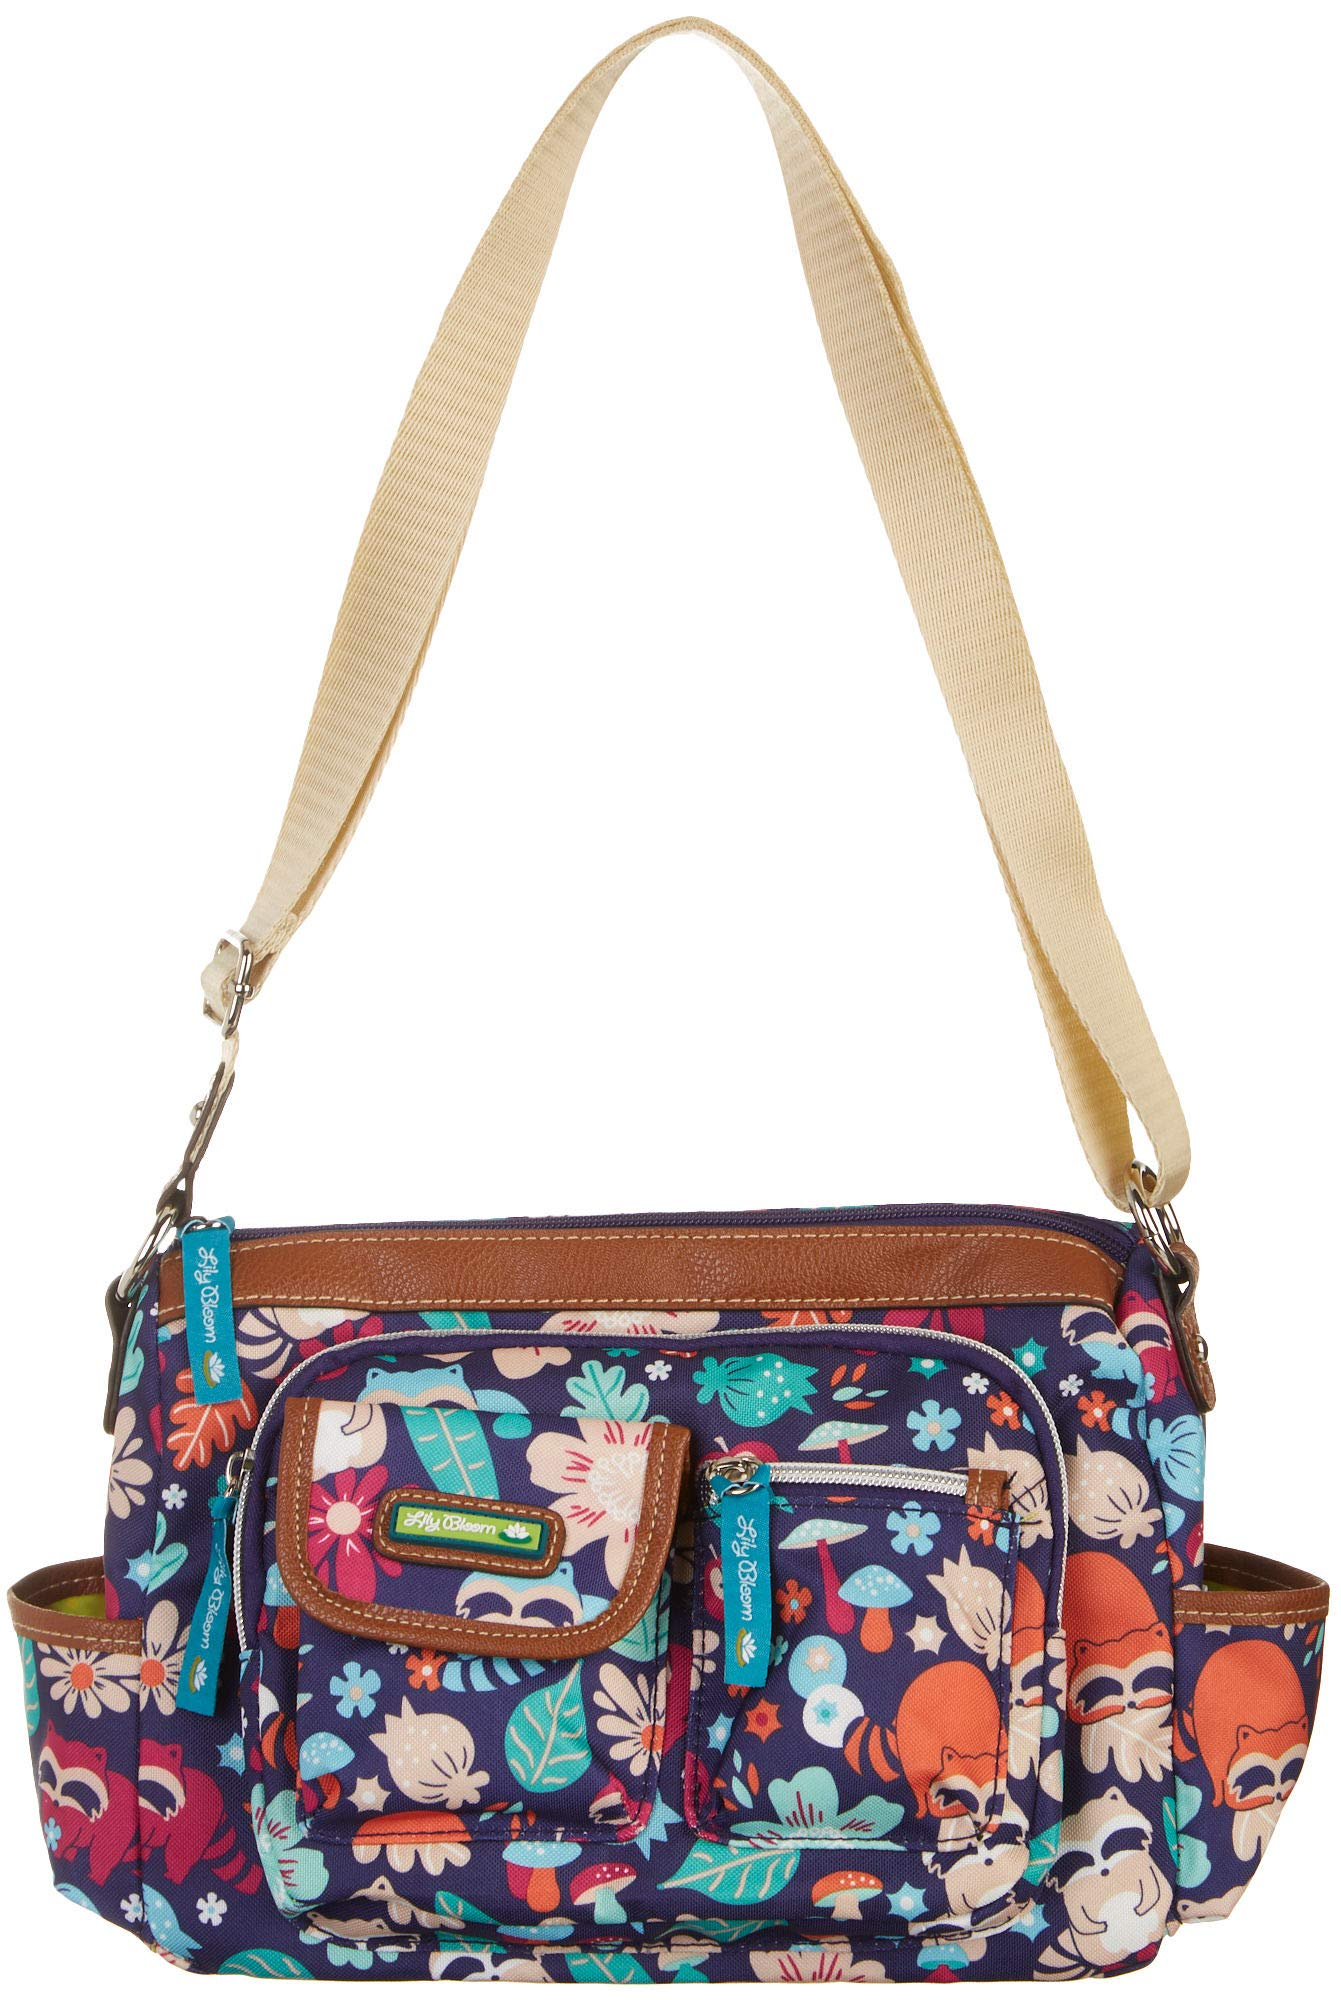 Lily Bloom Libby Harvest Raccoon Printed Hobo Handbag One Size Blue multi